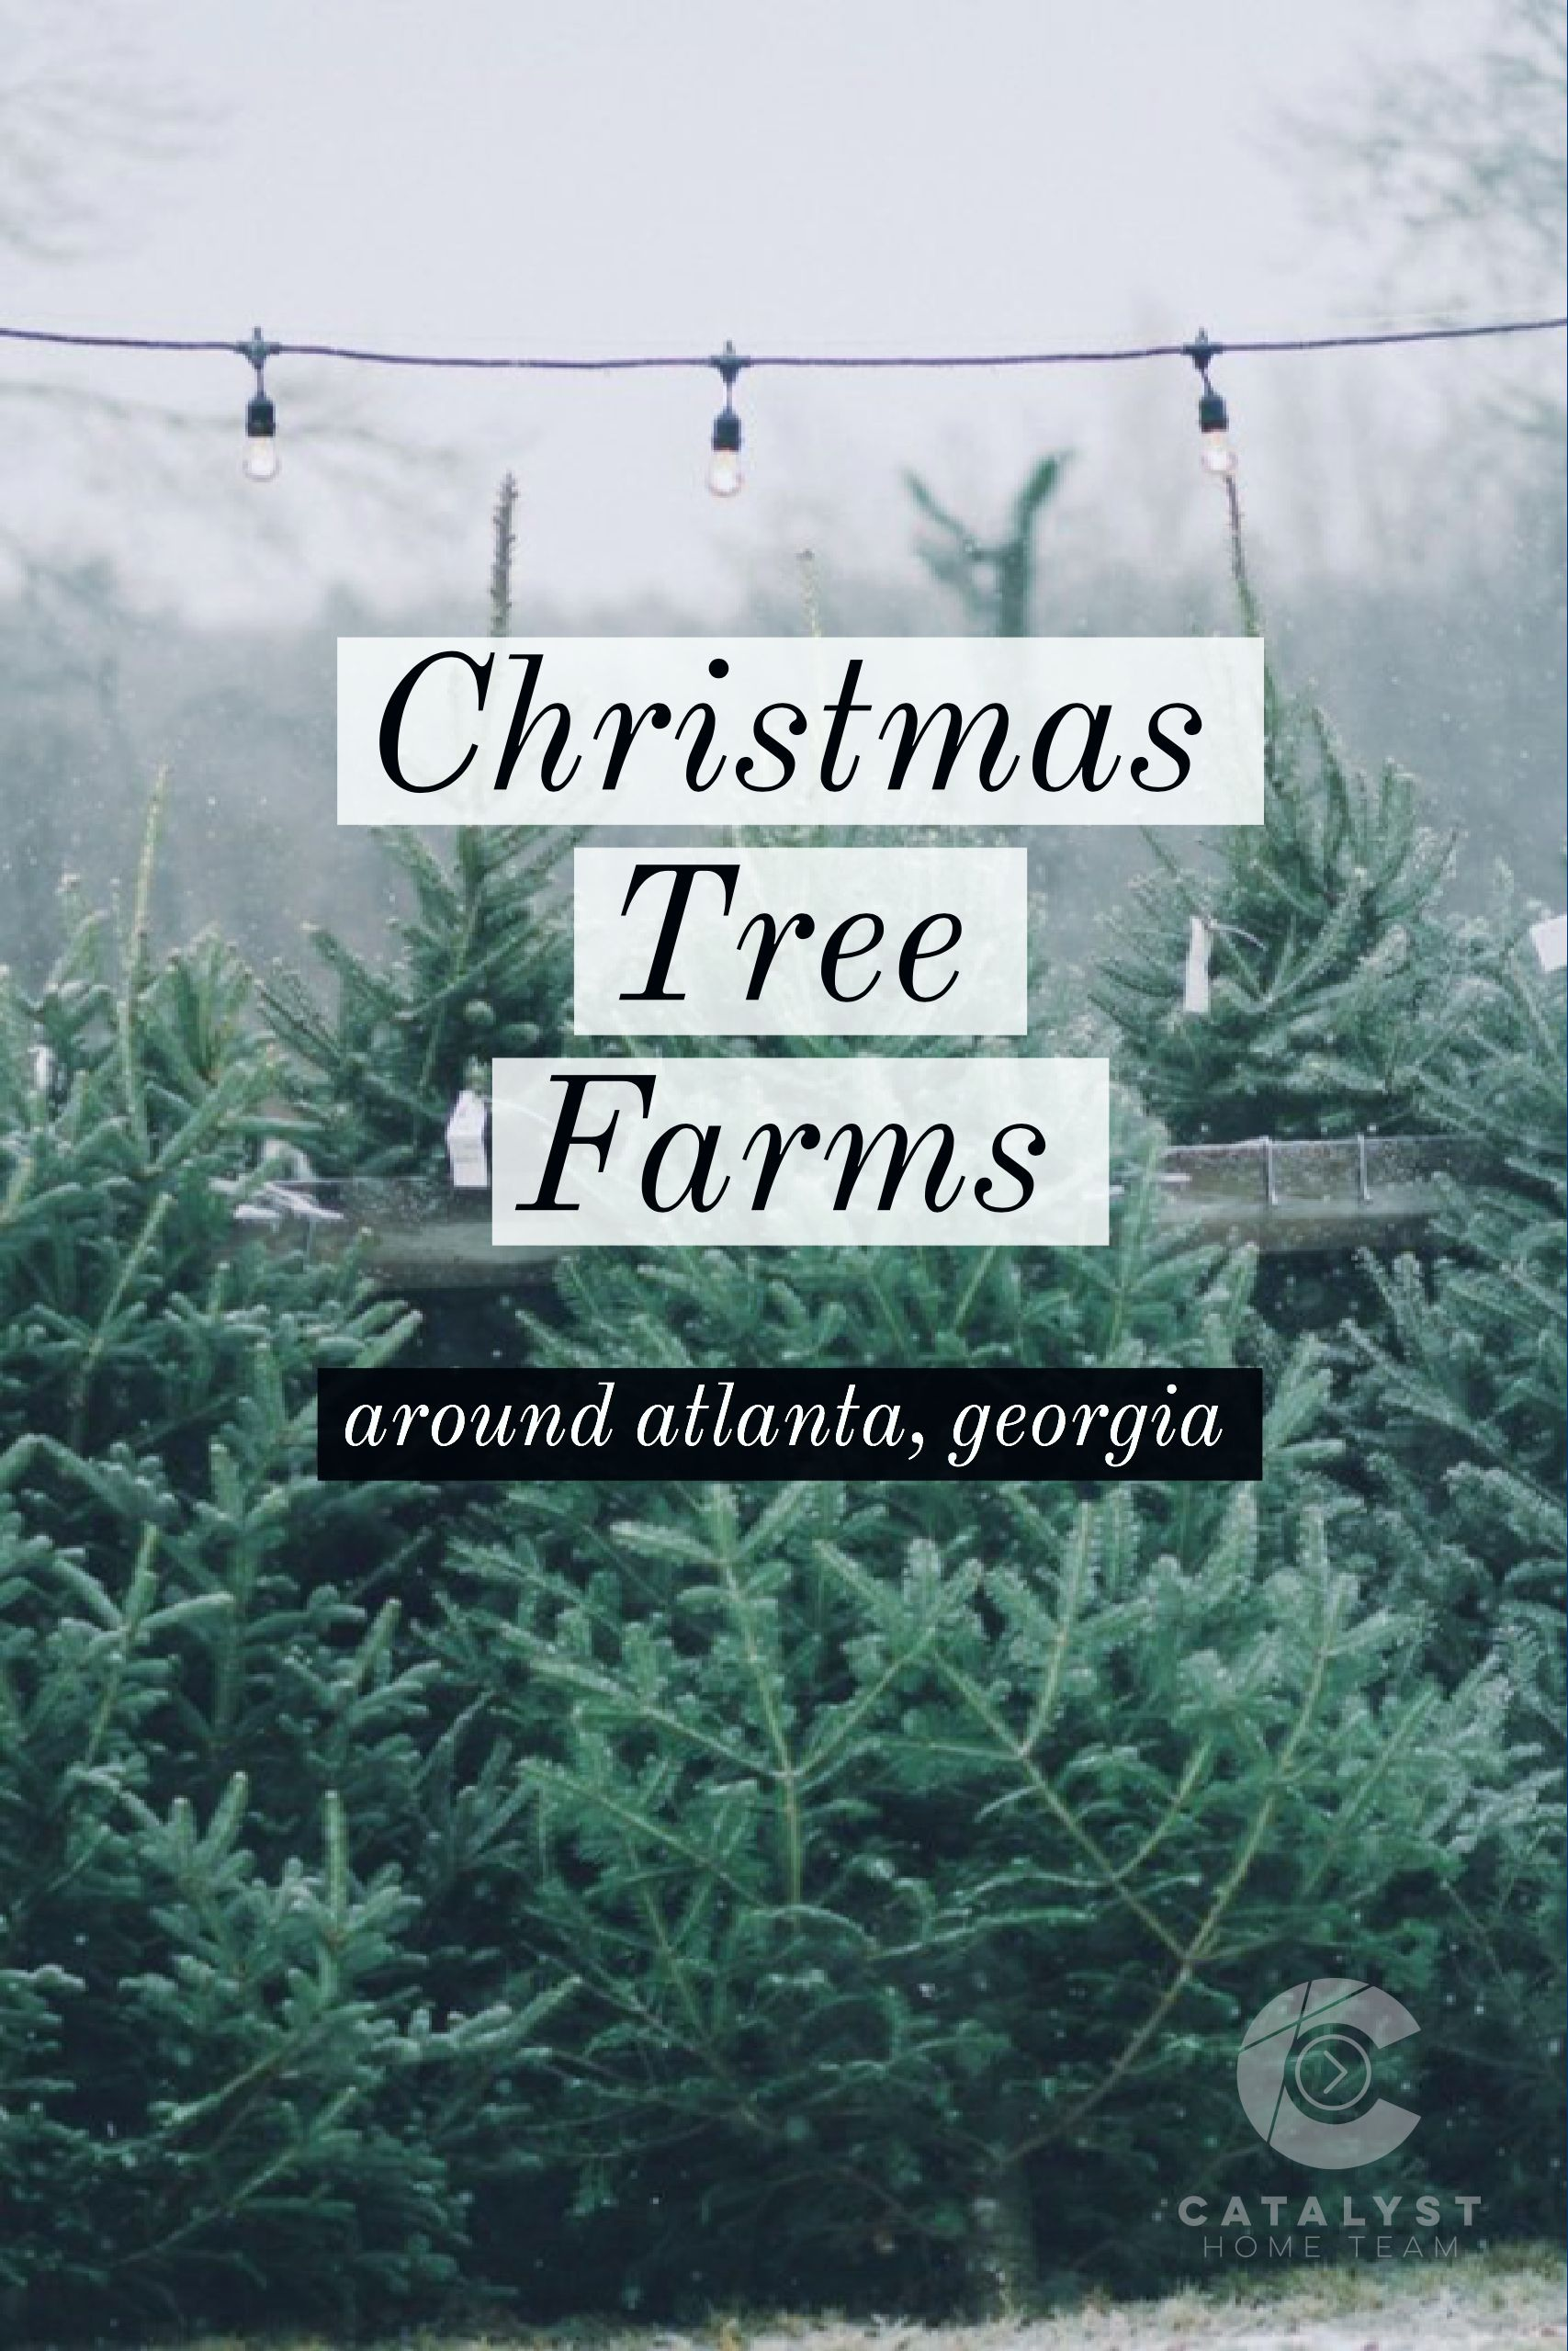 Christmas Tree Farms To Visit Around Atlanta Georgia Catalyst Home Team Christmas Tree Farm Tree Farms Farm Holidays